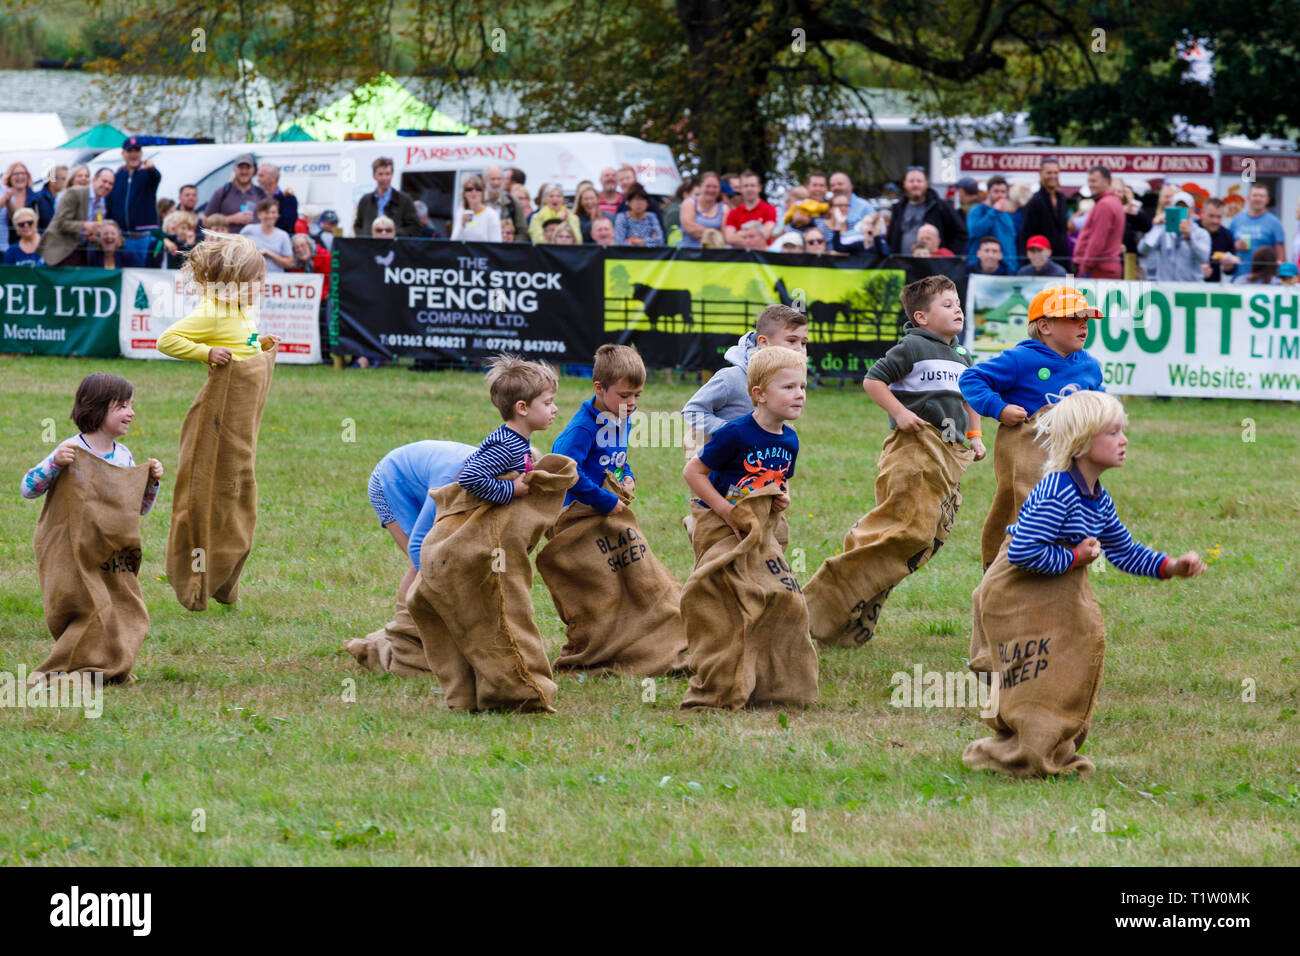 The childrens sack race in the main arena of the 2018 Aylsham Agricultural Show, Norfolk, UK. - Stock Image